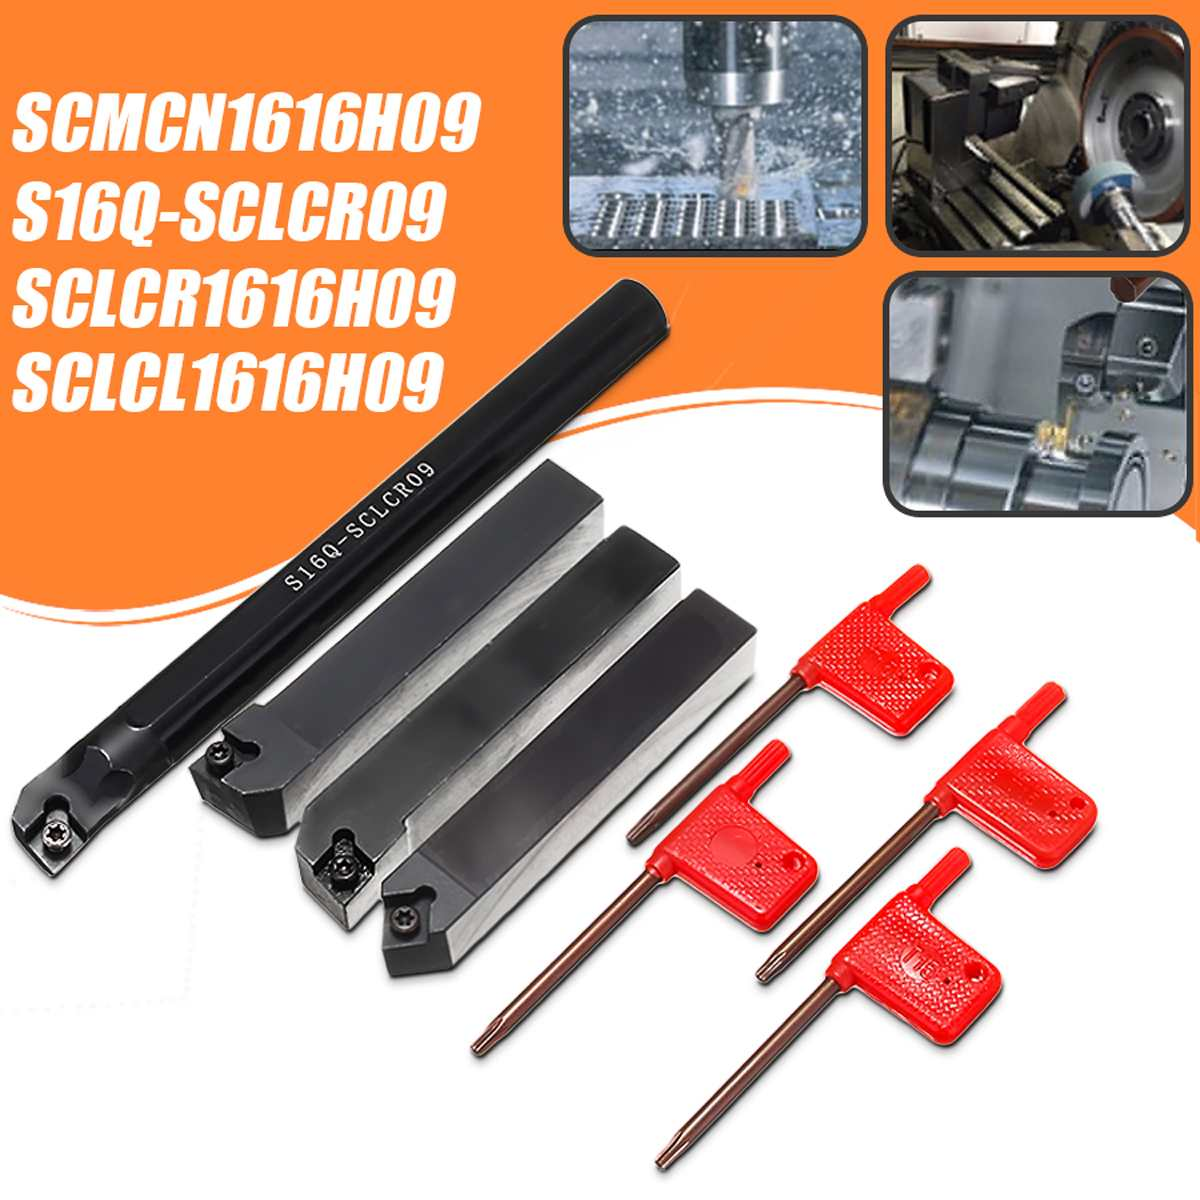 4 Set 16mm SCLCR Lathe Turning Tool Holder Boring Bar +4 pcs T15 Wrenches S16Q-SCLCR09/SCLCR1616H09/SCLCL1616H09/SCMCN1616H094 Set 16mm SCLCR Lathe Turning Tool Holder Boring Bar +4 pcs T15 Wrenches S16Q-SCLCR09/SCLCR1616H09/SCLCL1616H09/SCMCN1616H09